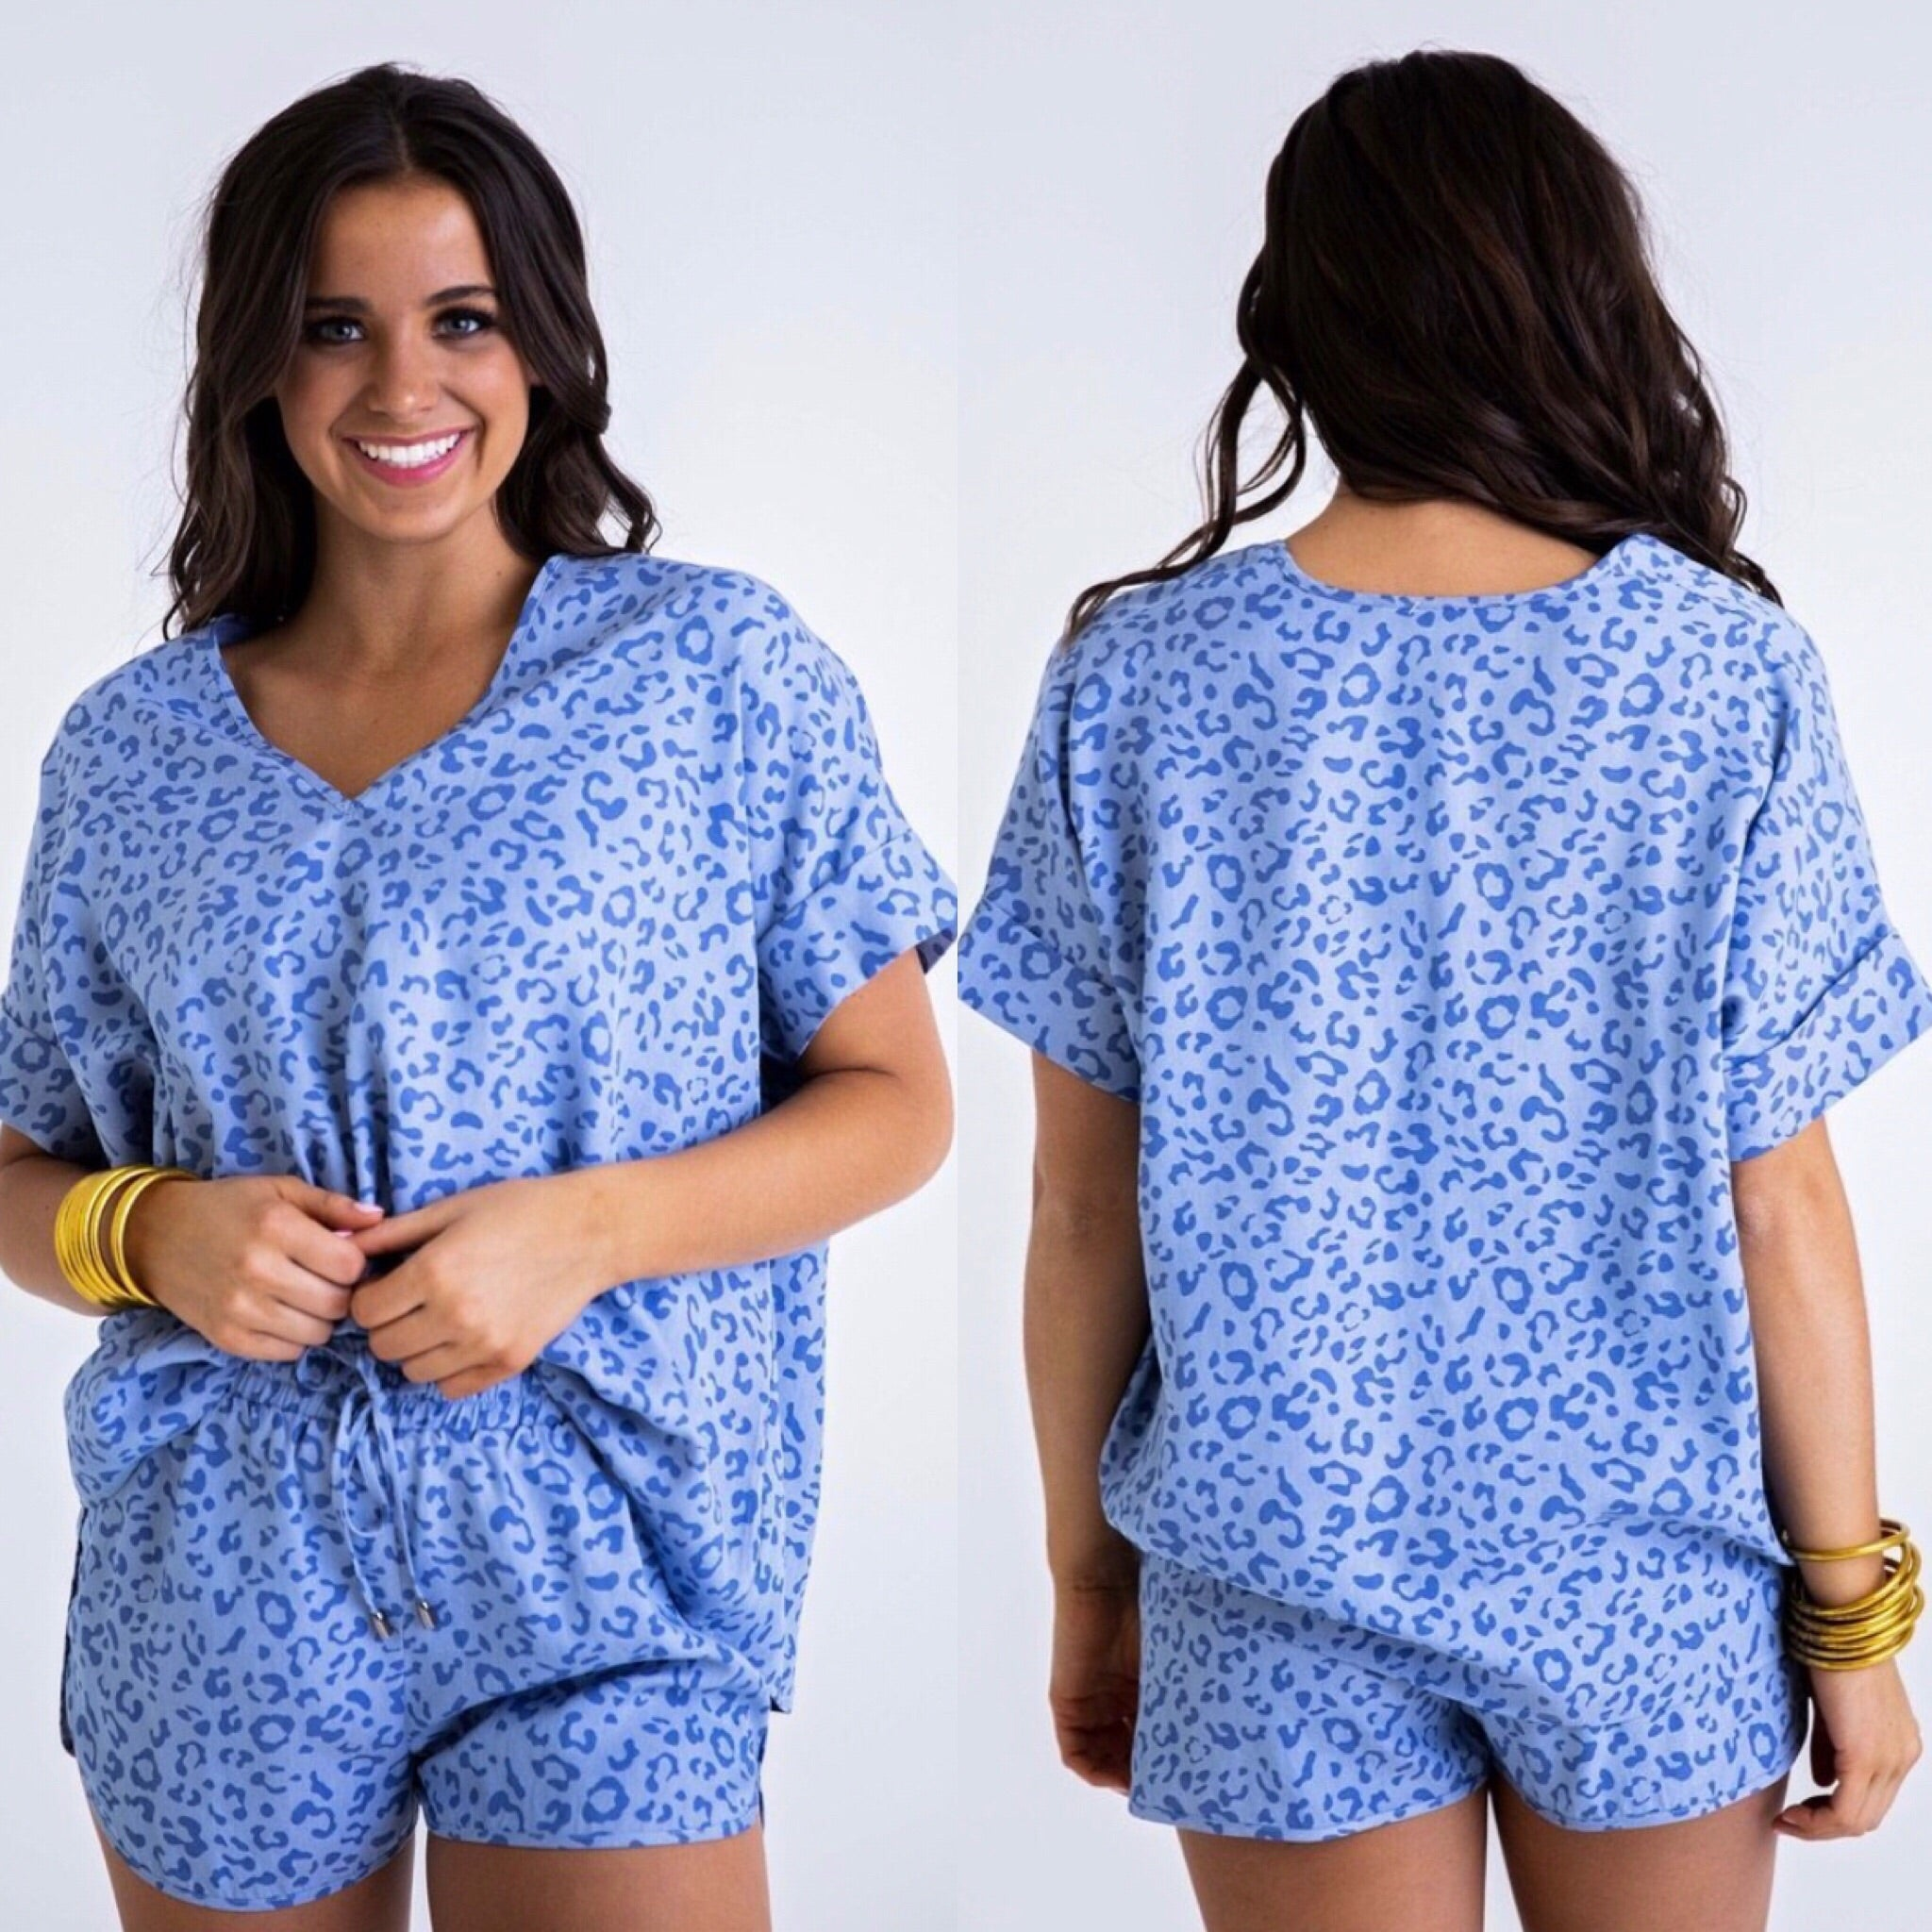 BLUE LEOPARD CHAMBRAY TOP